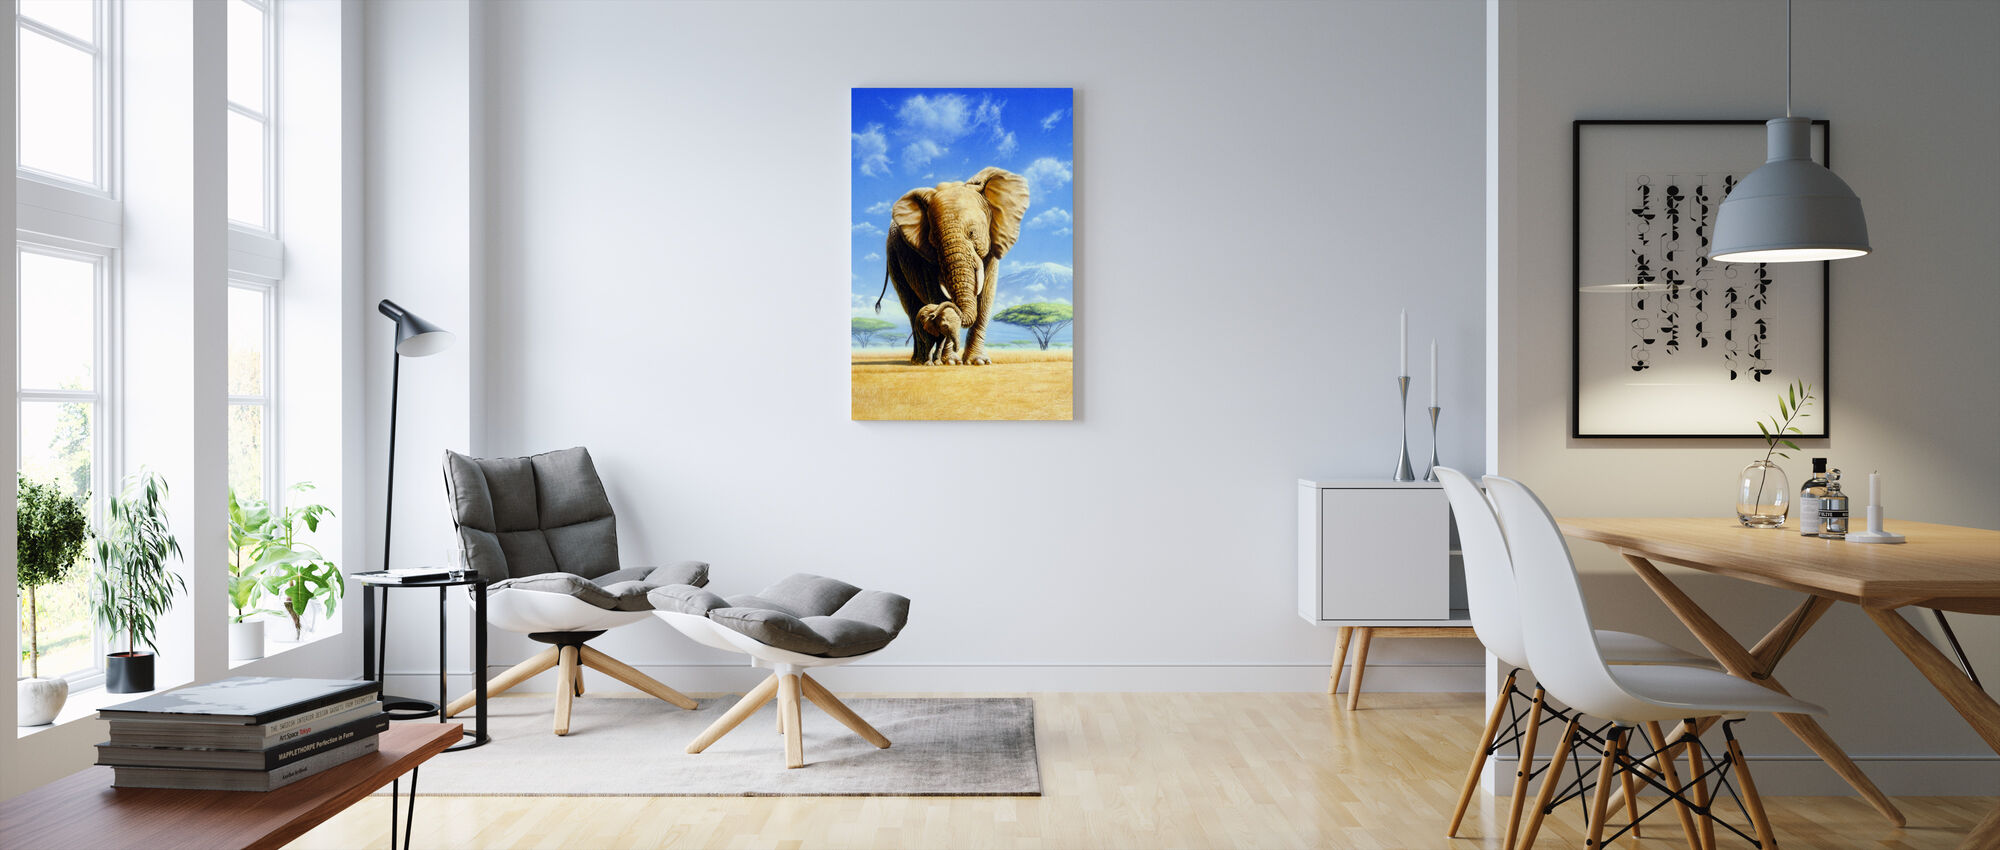 Olifant Moeder & Baby - Canvas print - Woonkamer